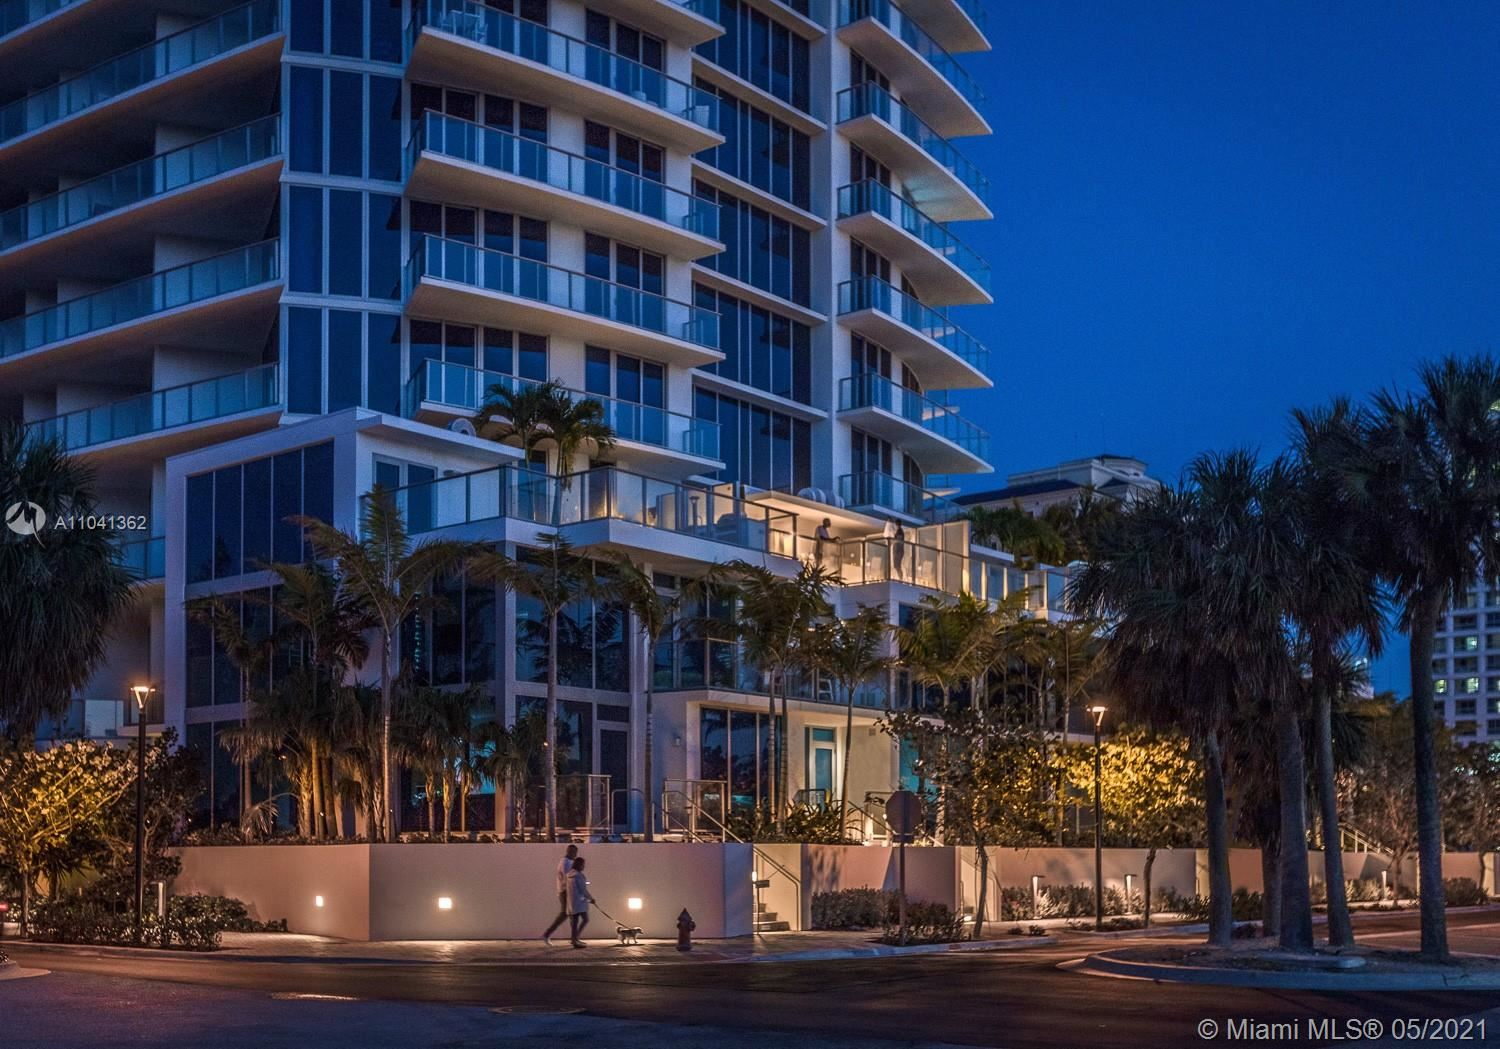 Photo of 701 N Fort Lauderdale Blvd #TH4, Fort Lauderdale, FL 33304 (MLS # A11041362)